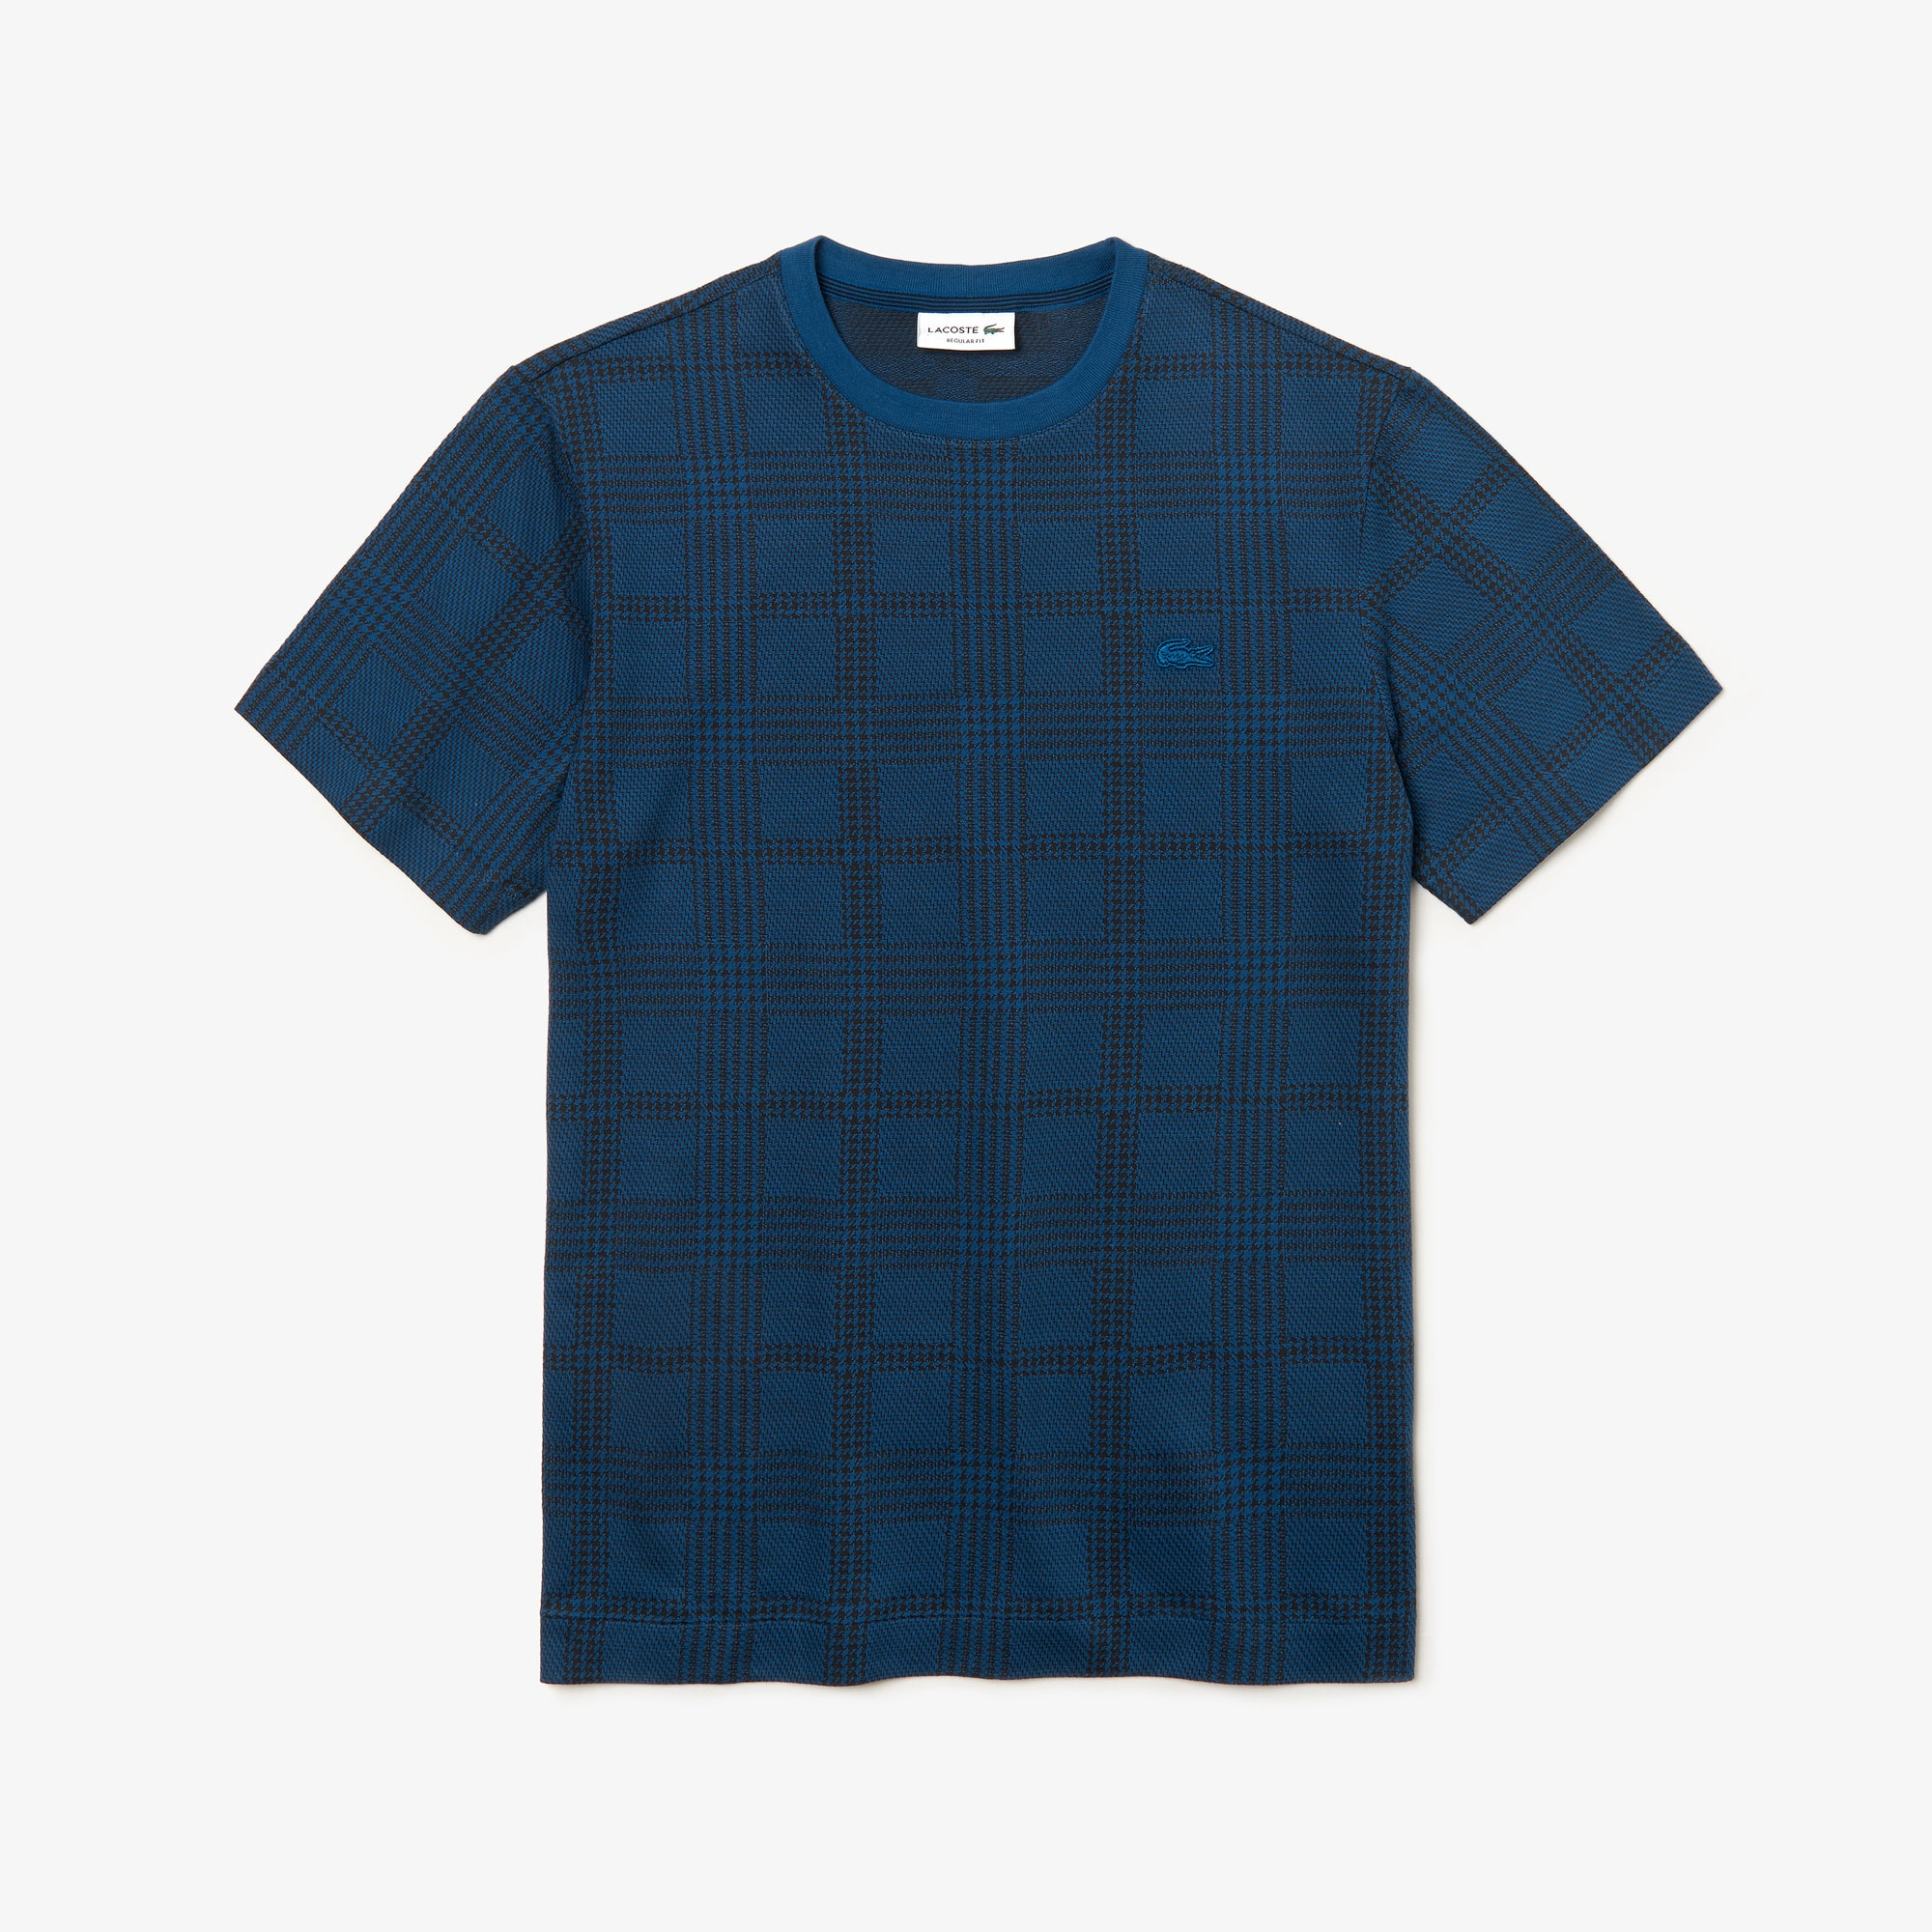 Men's Crew Neck Glen Plaid Cotton Jacquard T-shirt